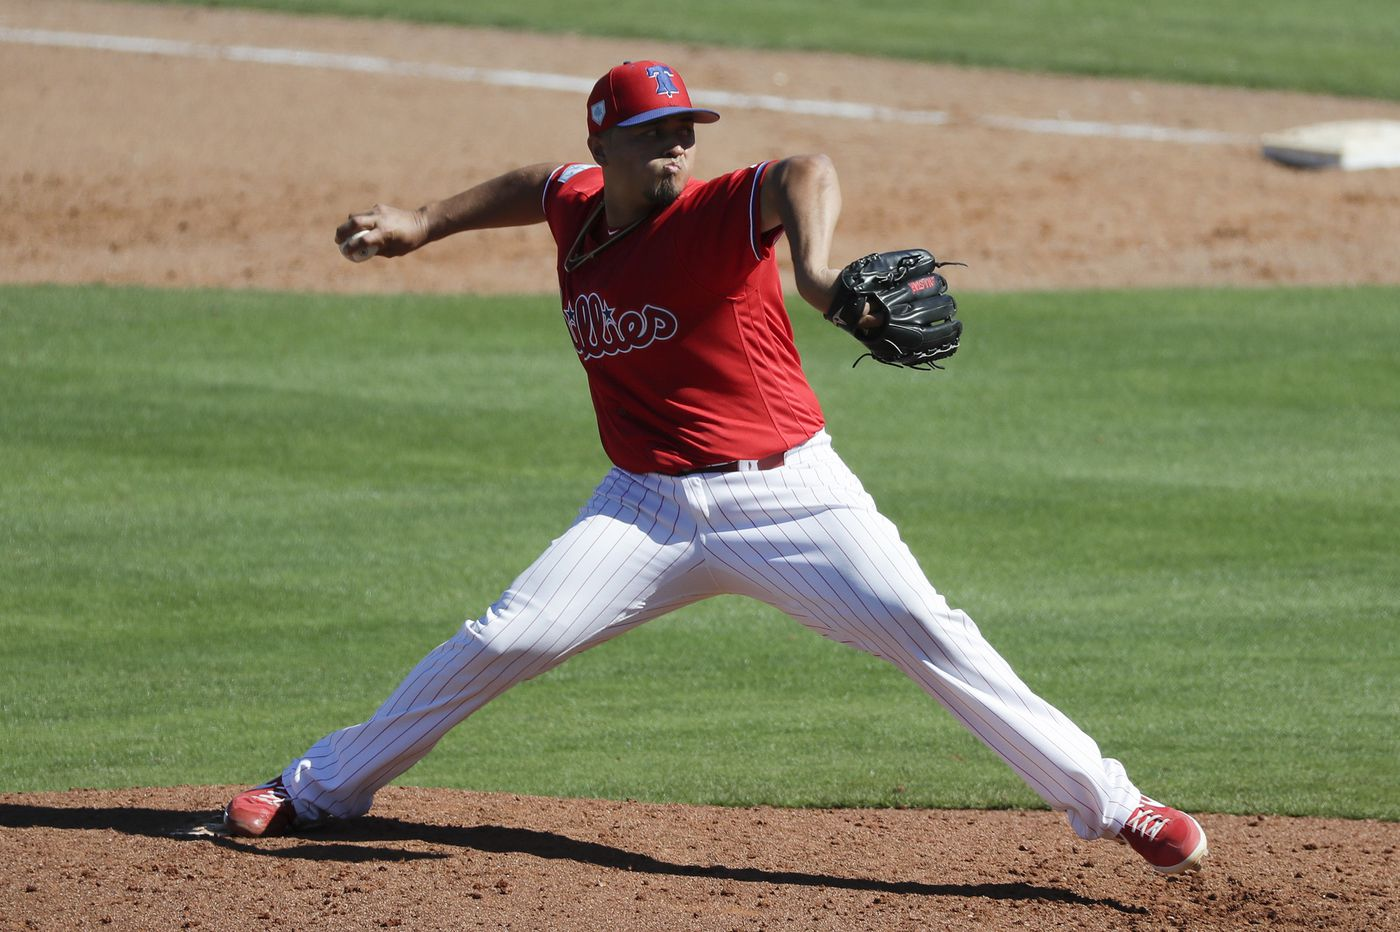 Victor Arano's extreme spring struggles cost him a spot on Phillies' opening-day roster